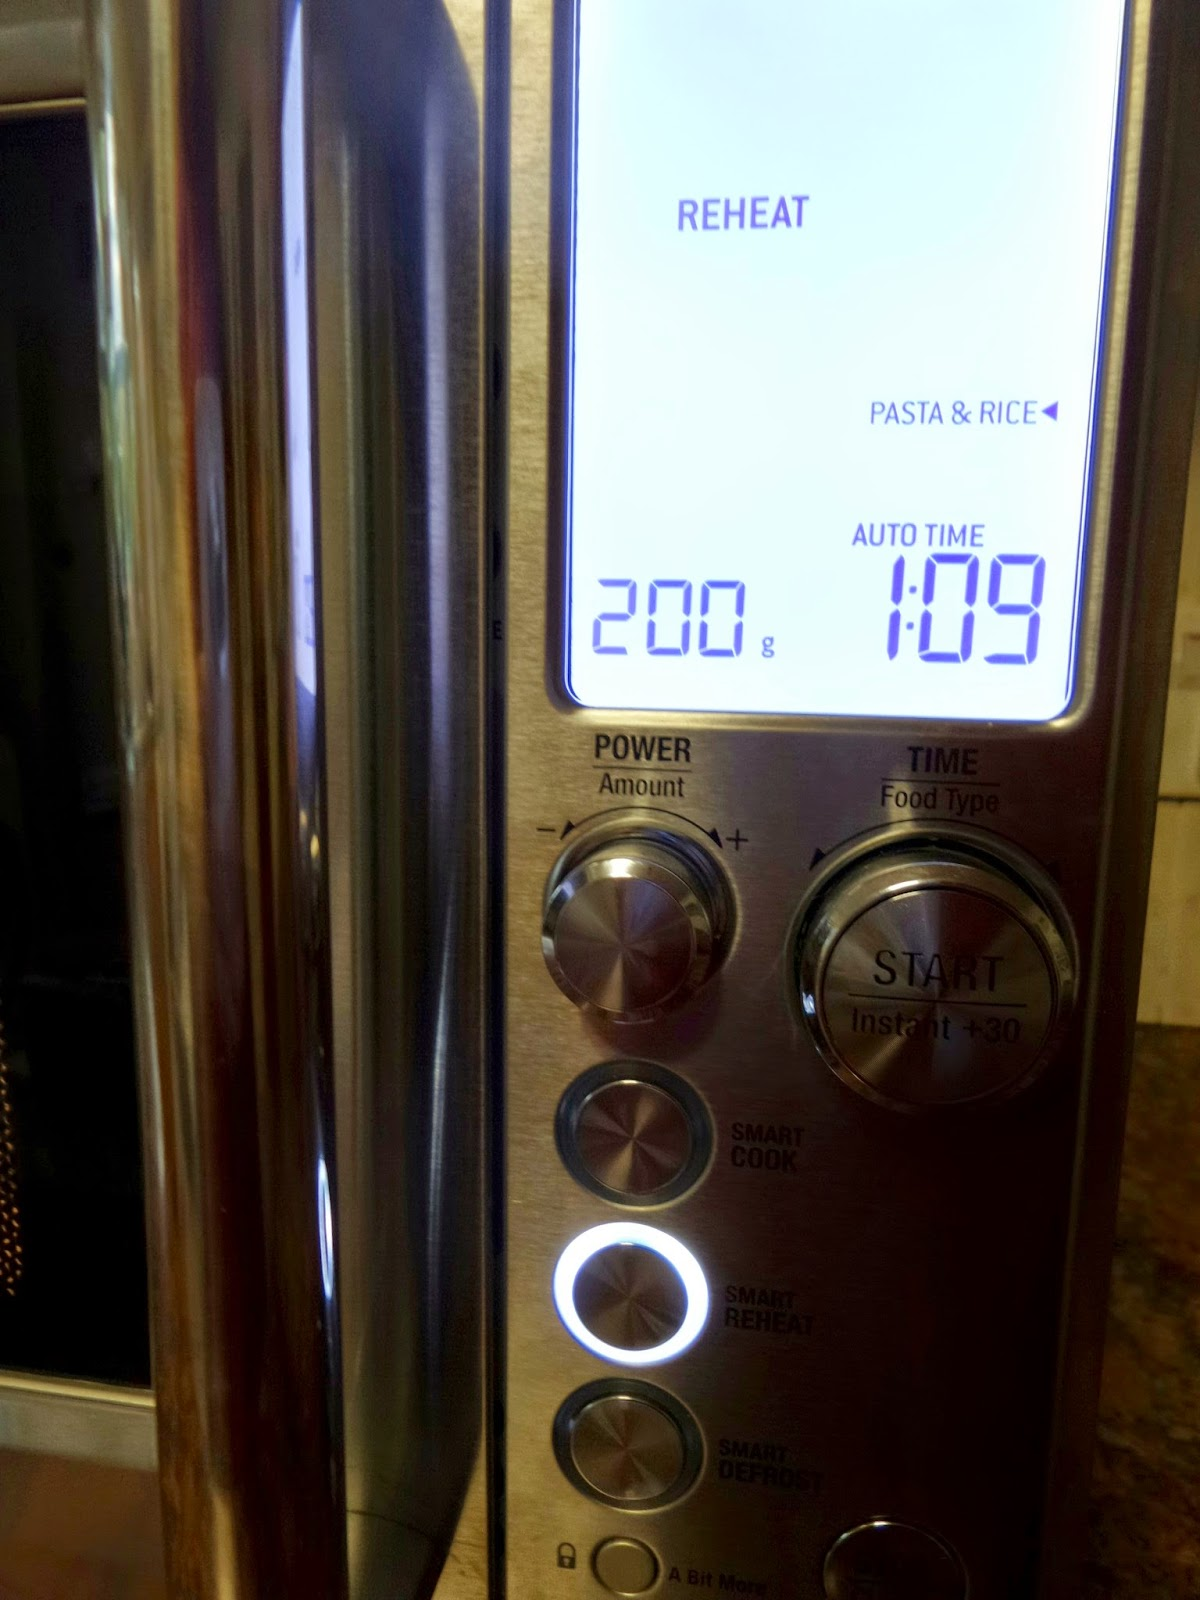 Reheat function on the Sage One Touch Microwave by Heston Blumenthal